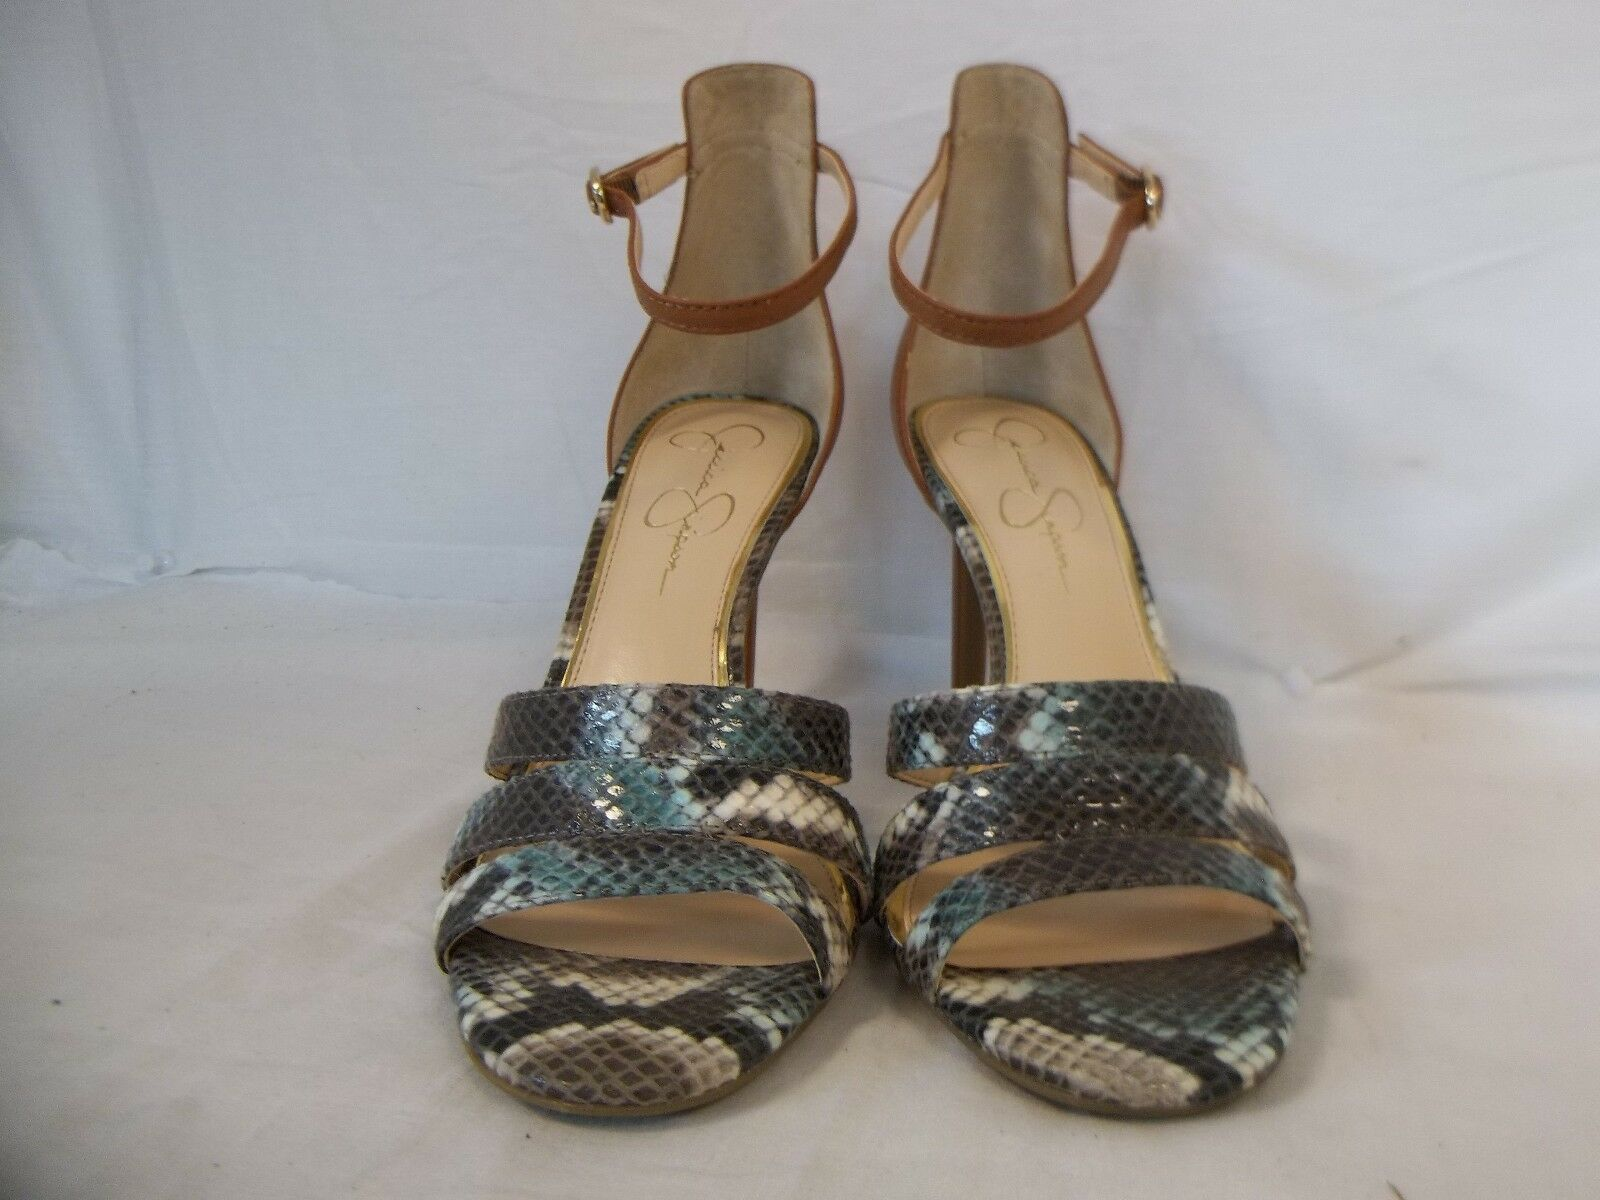 Jessica Simpson 7.5 M Maselli Multi Color Open Toe Heels New Womens Shoes NWOB image 2